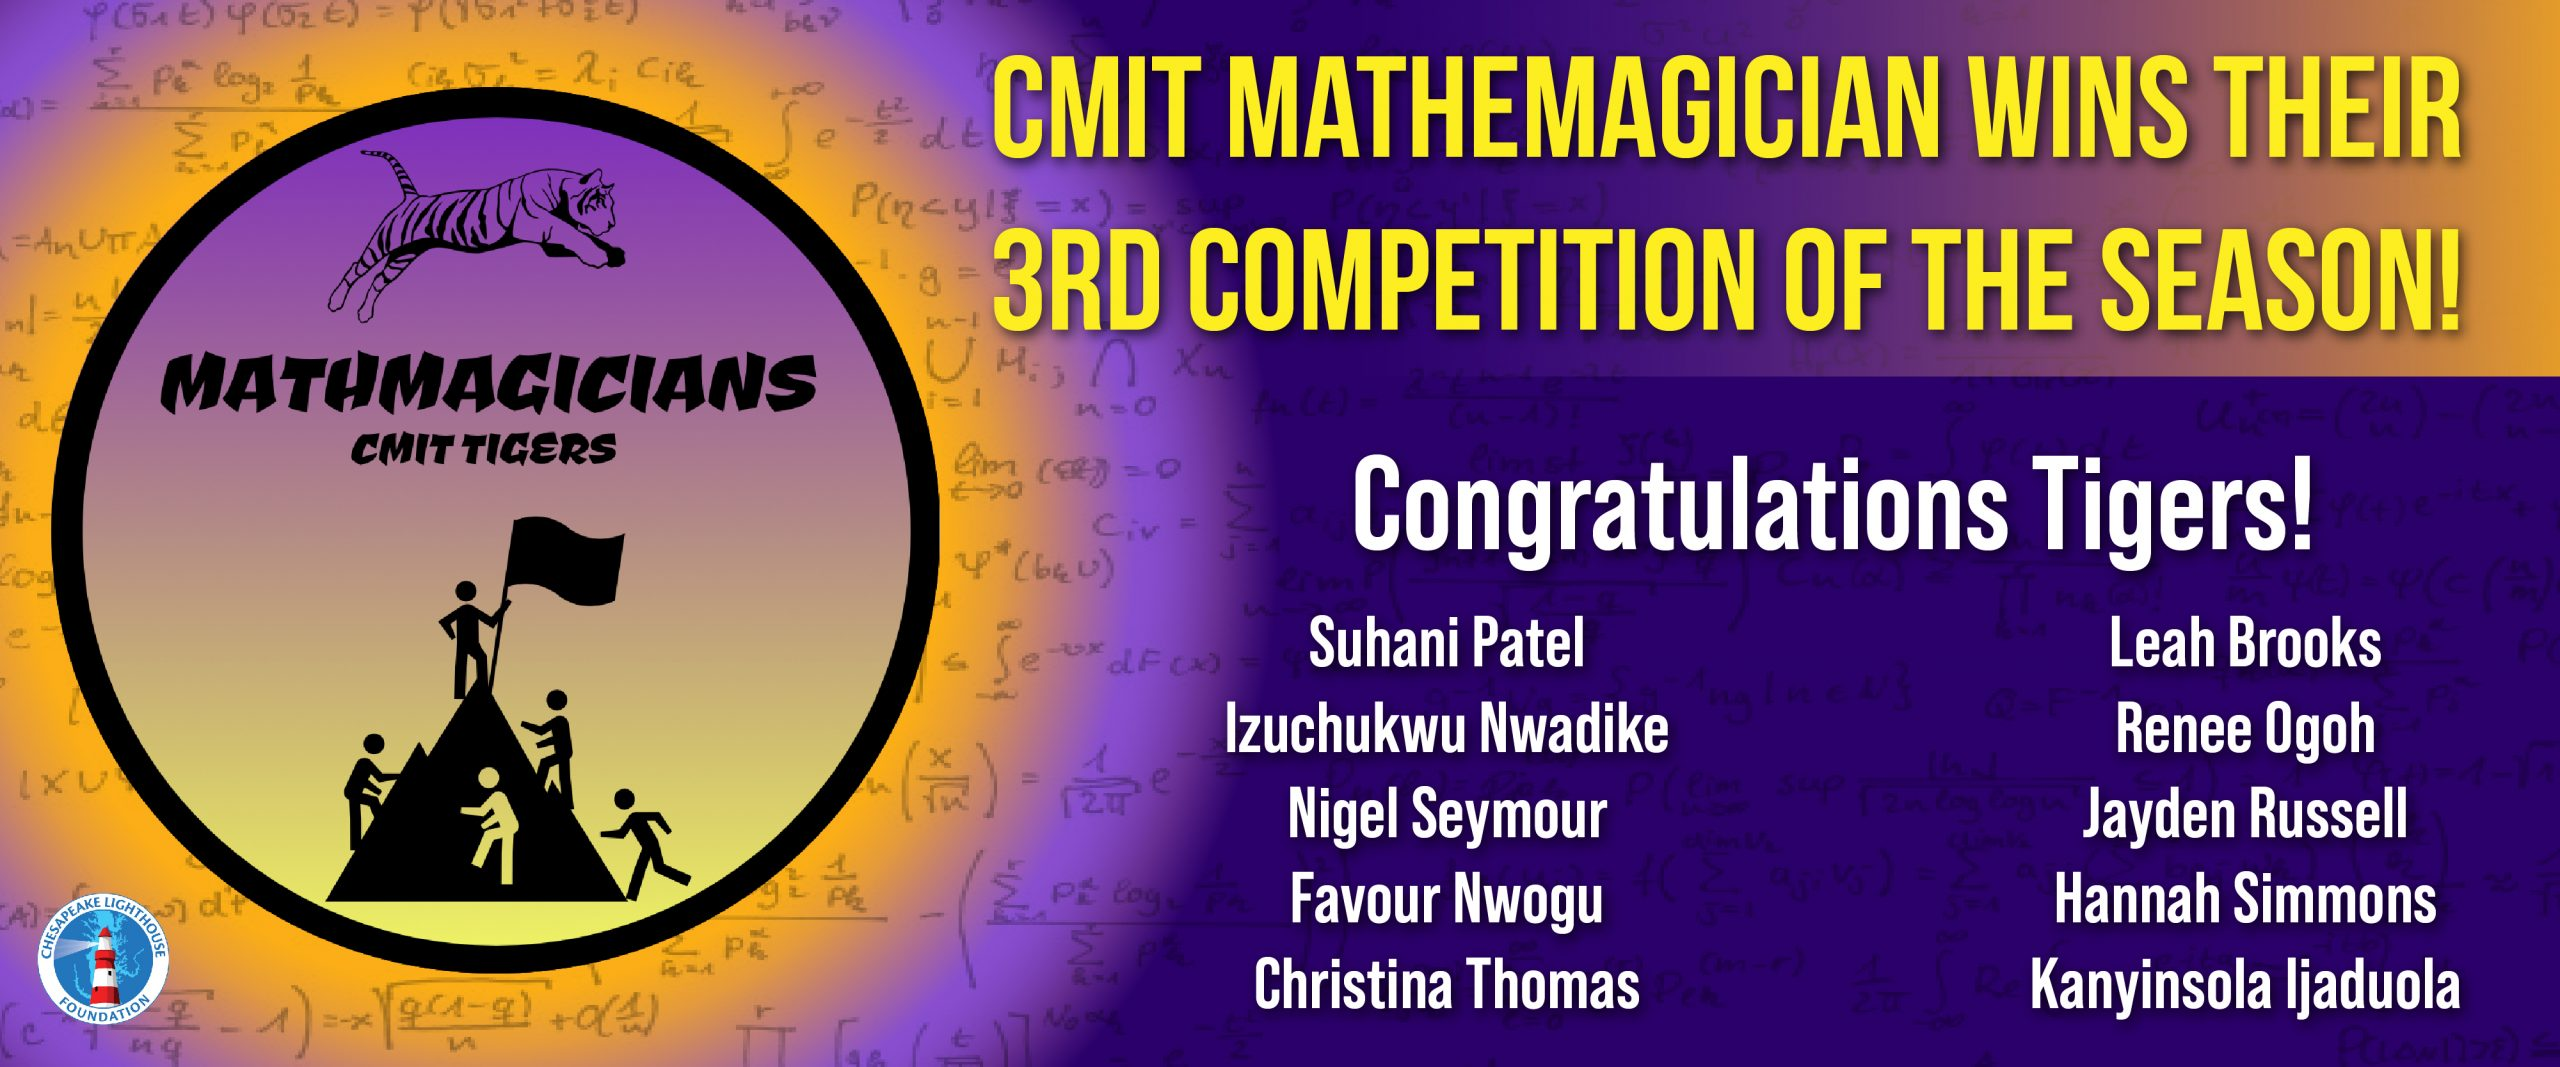 Mathemagicians 3x Wins!